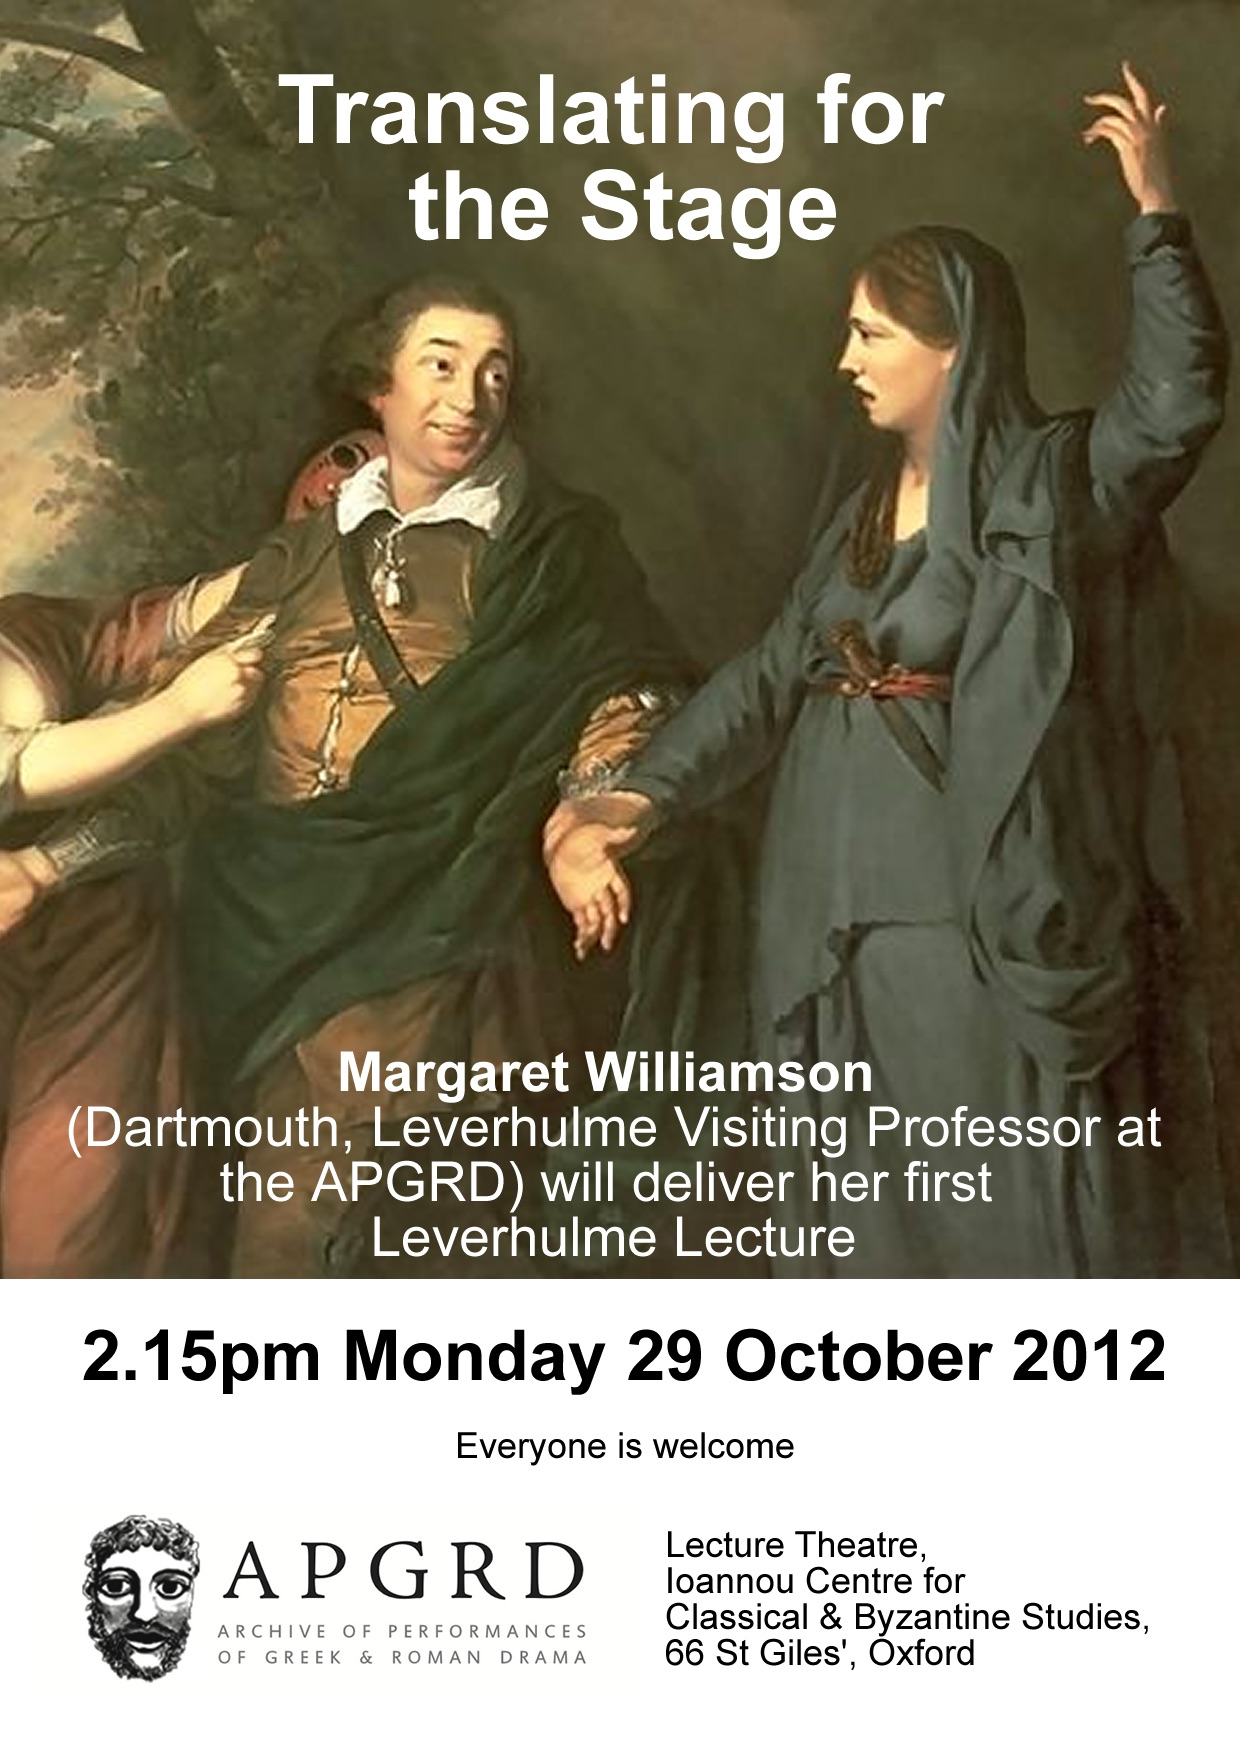 Poster for Margaret Williamson's Leverhulme lecture